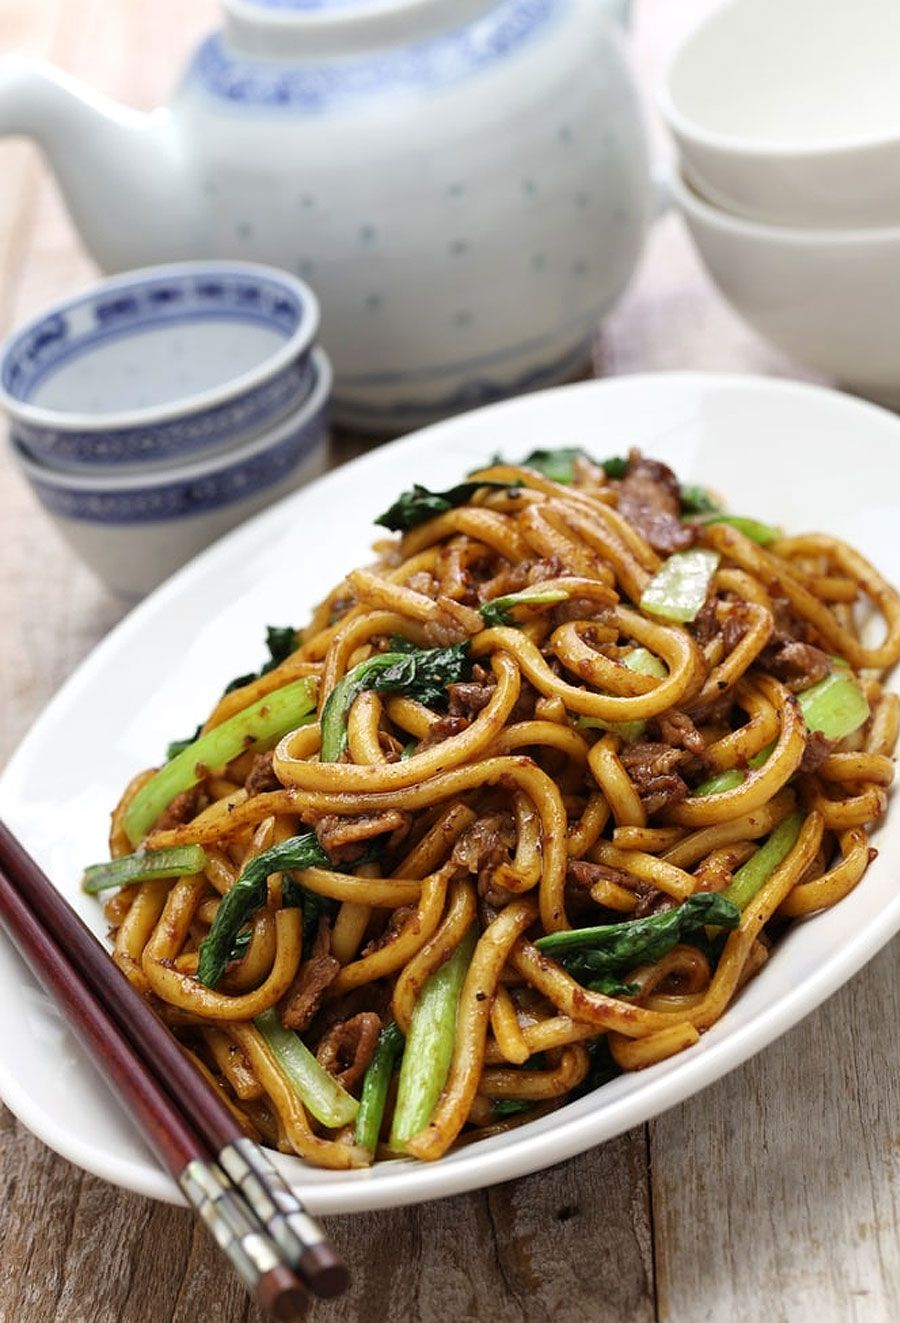 Chicken lo mein is way better than takeout. This easy Chicken Lo Mein recipe is a perfect homemade #bellpeppers